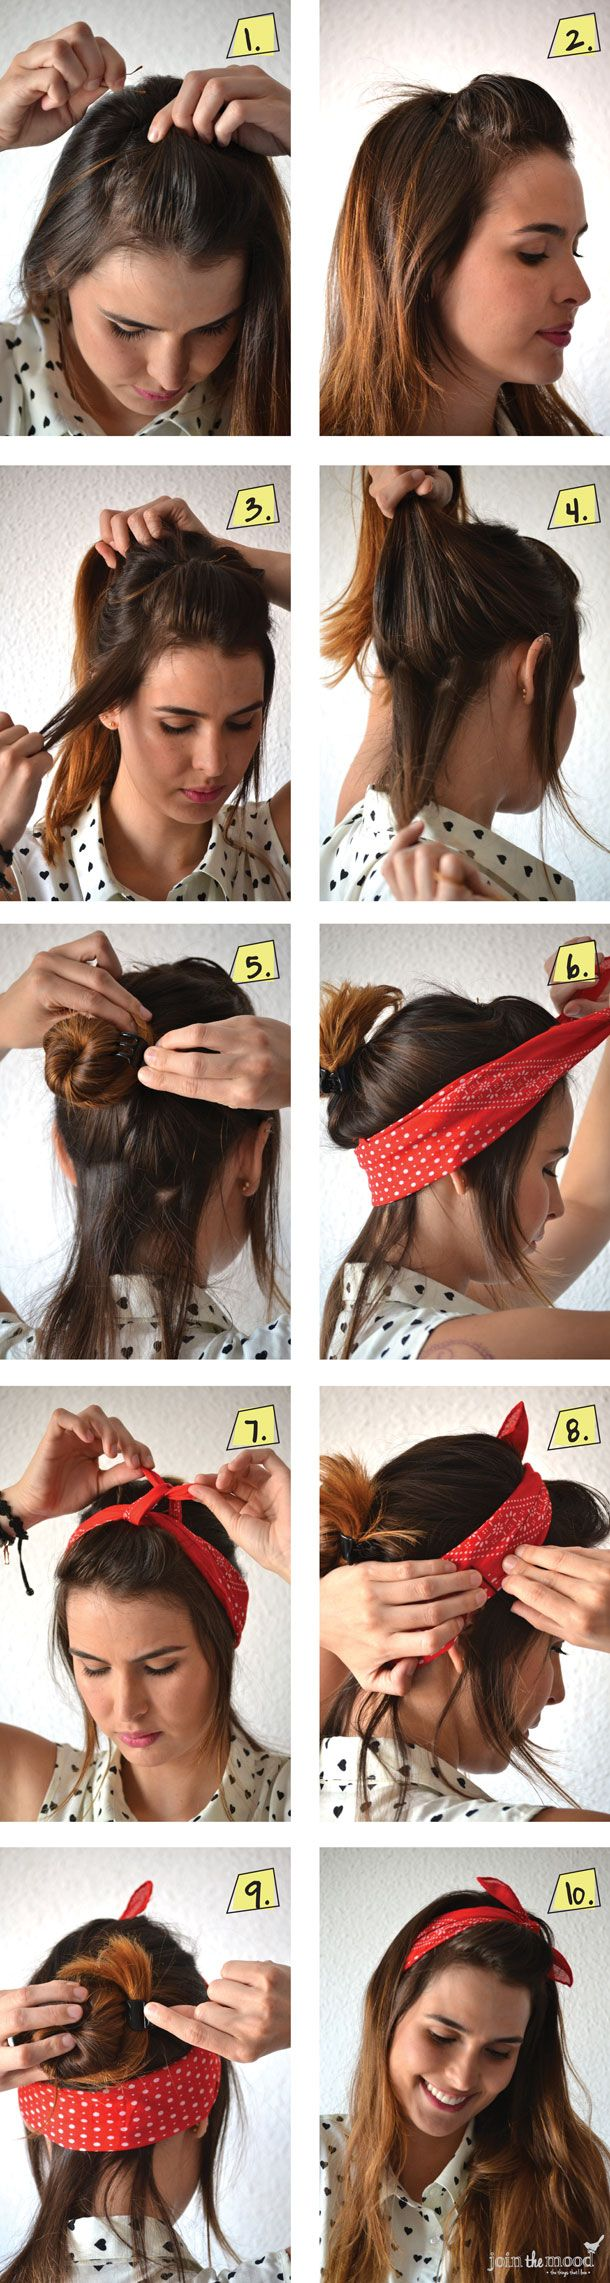 Incredible 14 Tutorials For Bandana Hairstyles Pretty Designs Hairstyles For Men Maxibearus